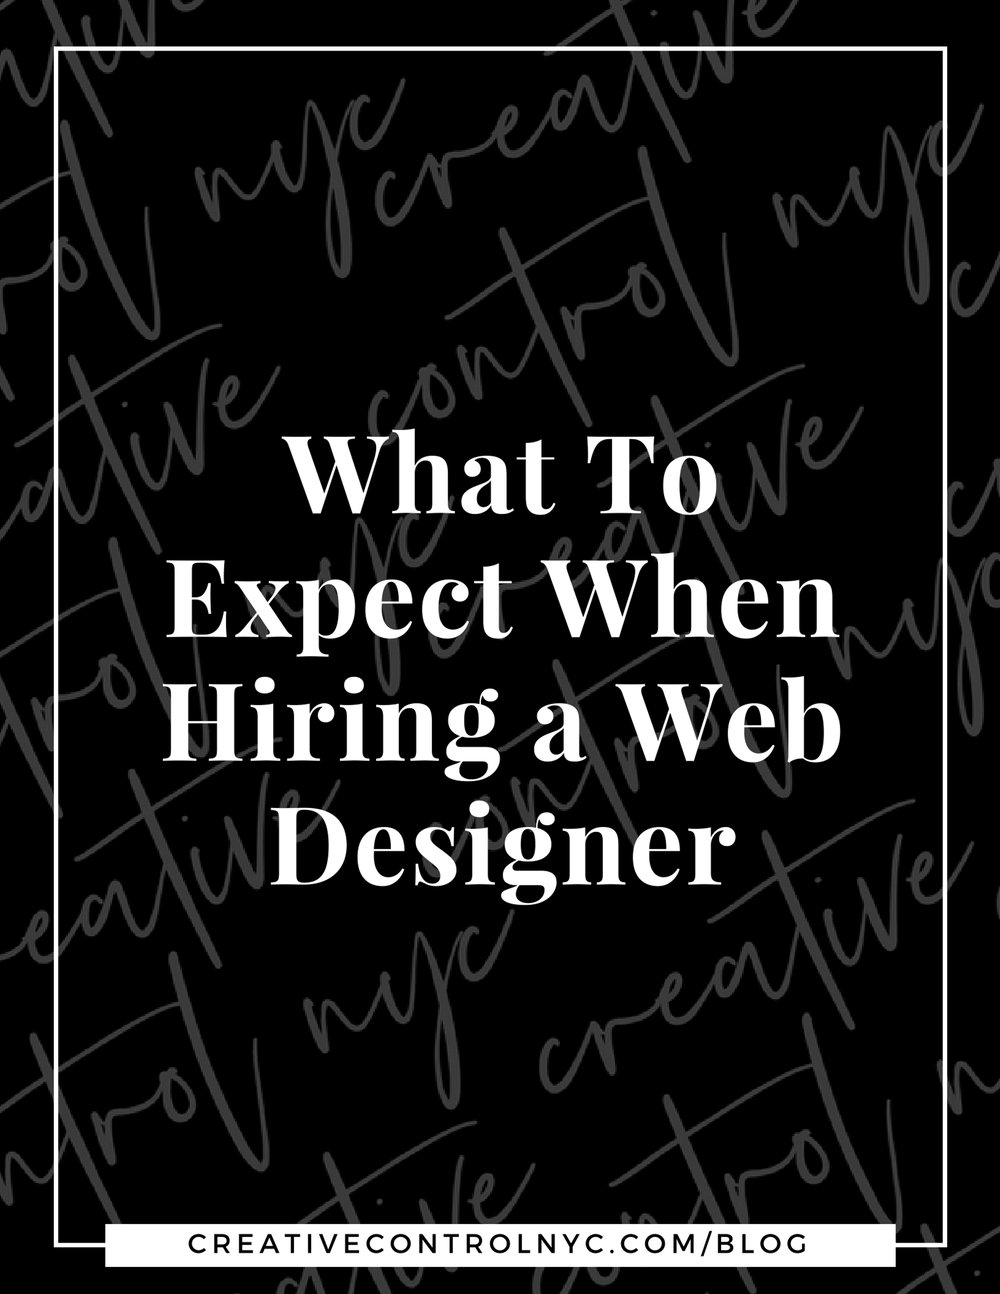 Creative Control NYC - Blog Post - What To Expect When Hiring a Web Designer.jpg